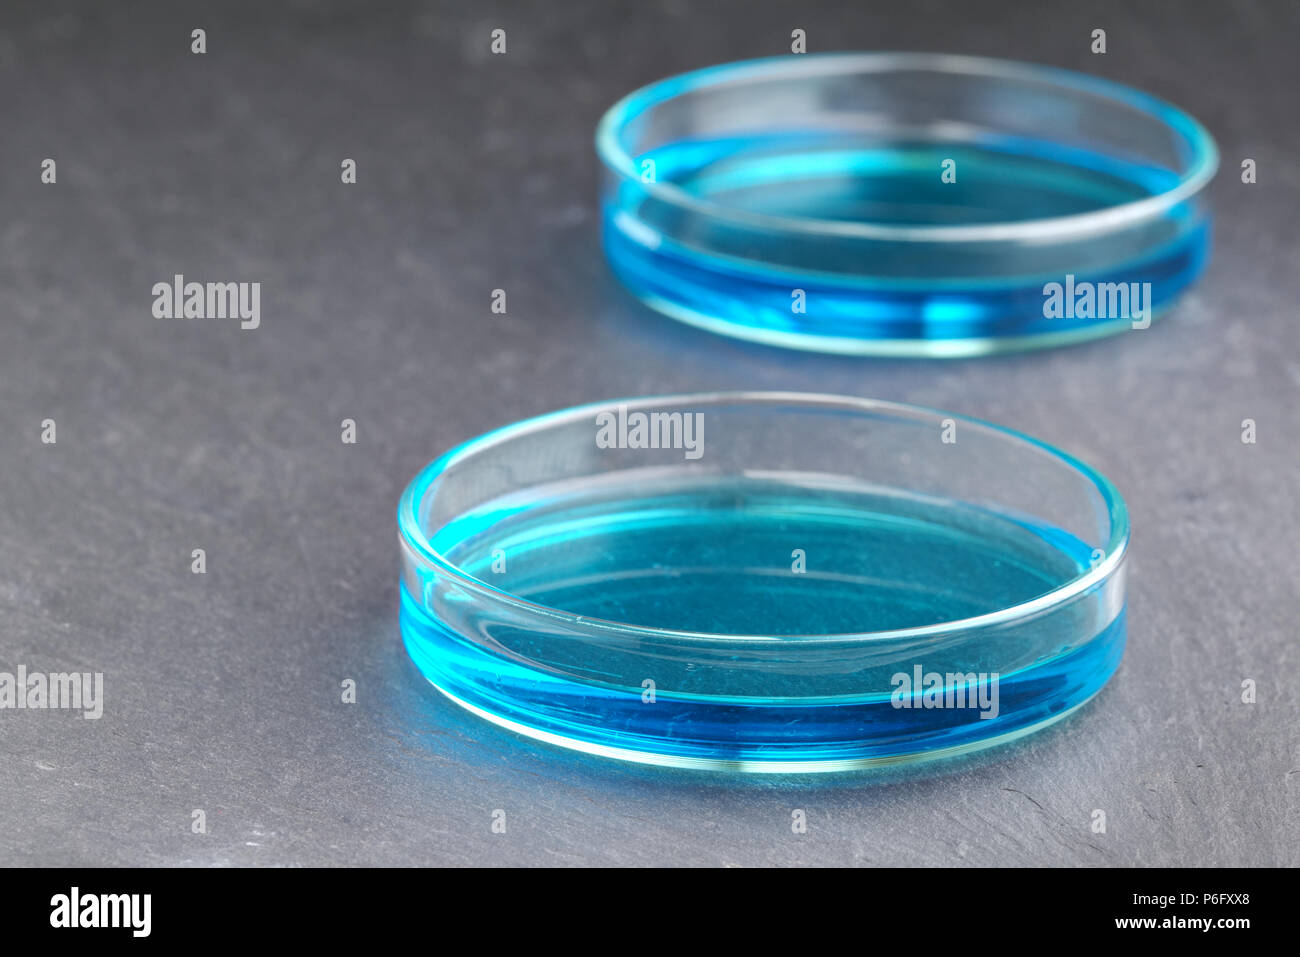 Copper Sulphate Solution Stock Photos & Copper Sulphate